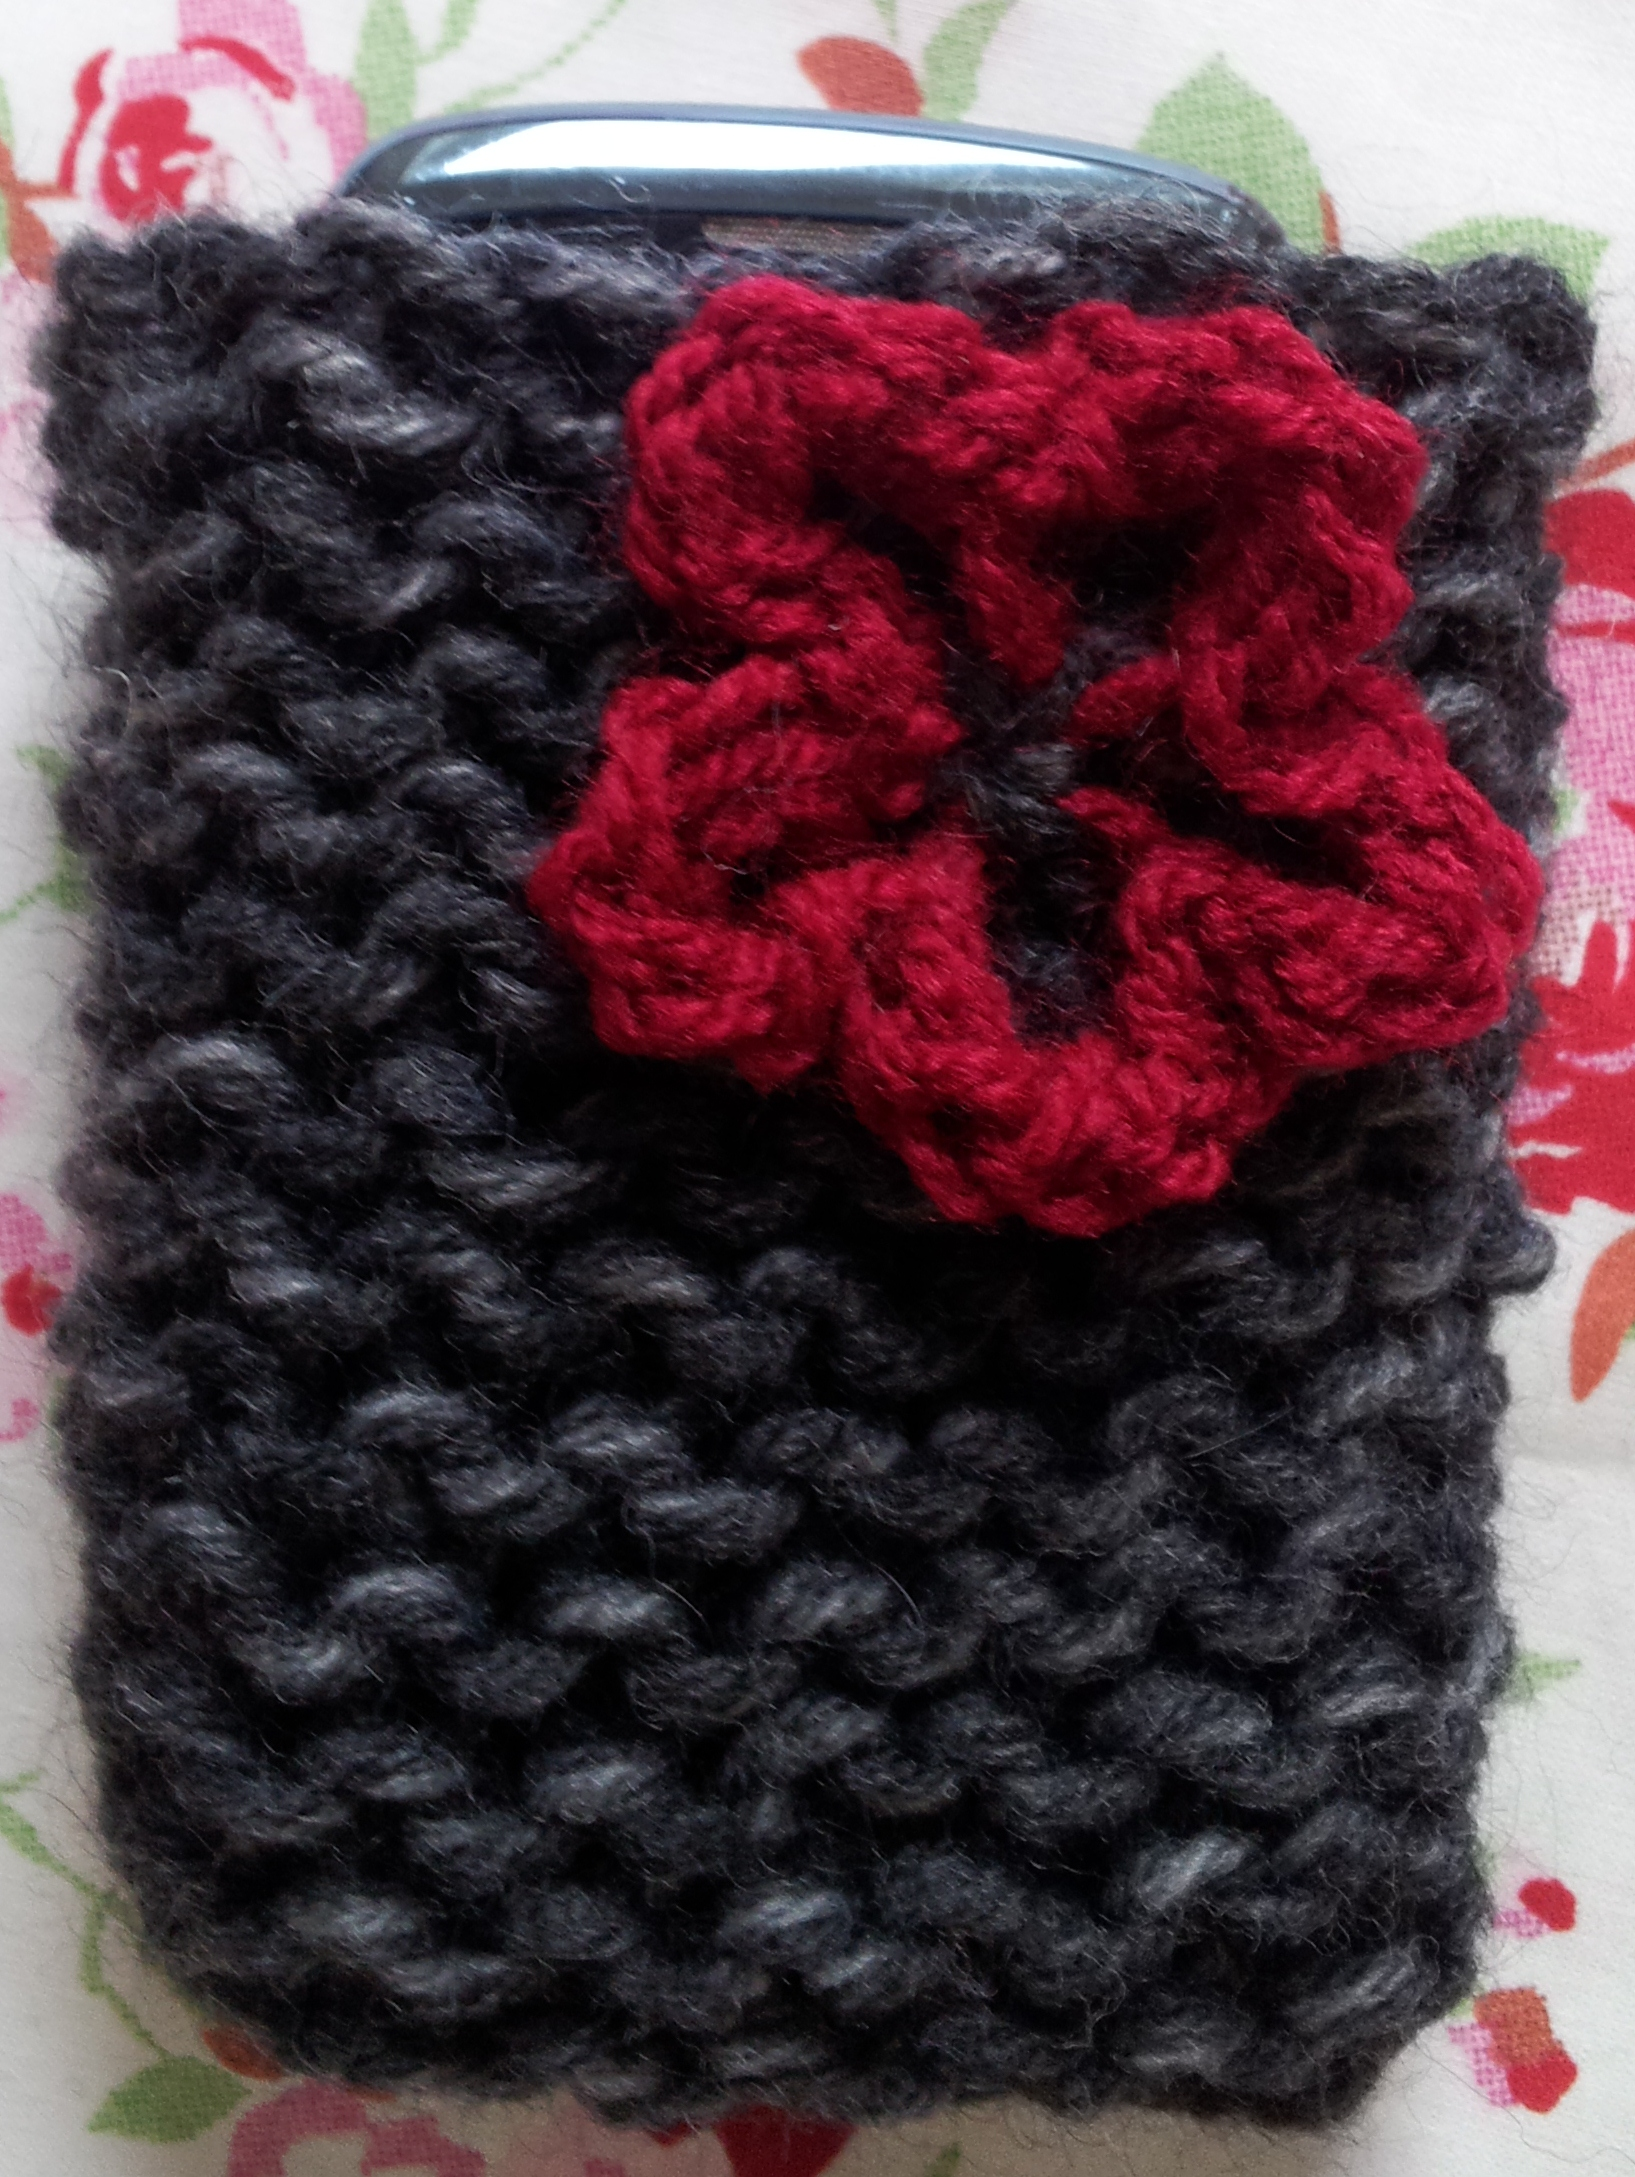 Mobile phone case tutorial free knitting pattern for beginners phone case flower bankloansurffo Images